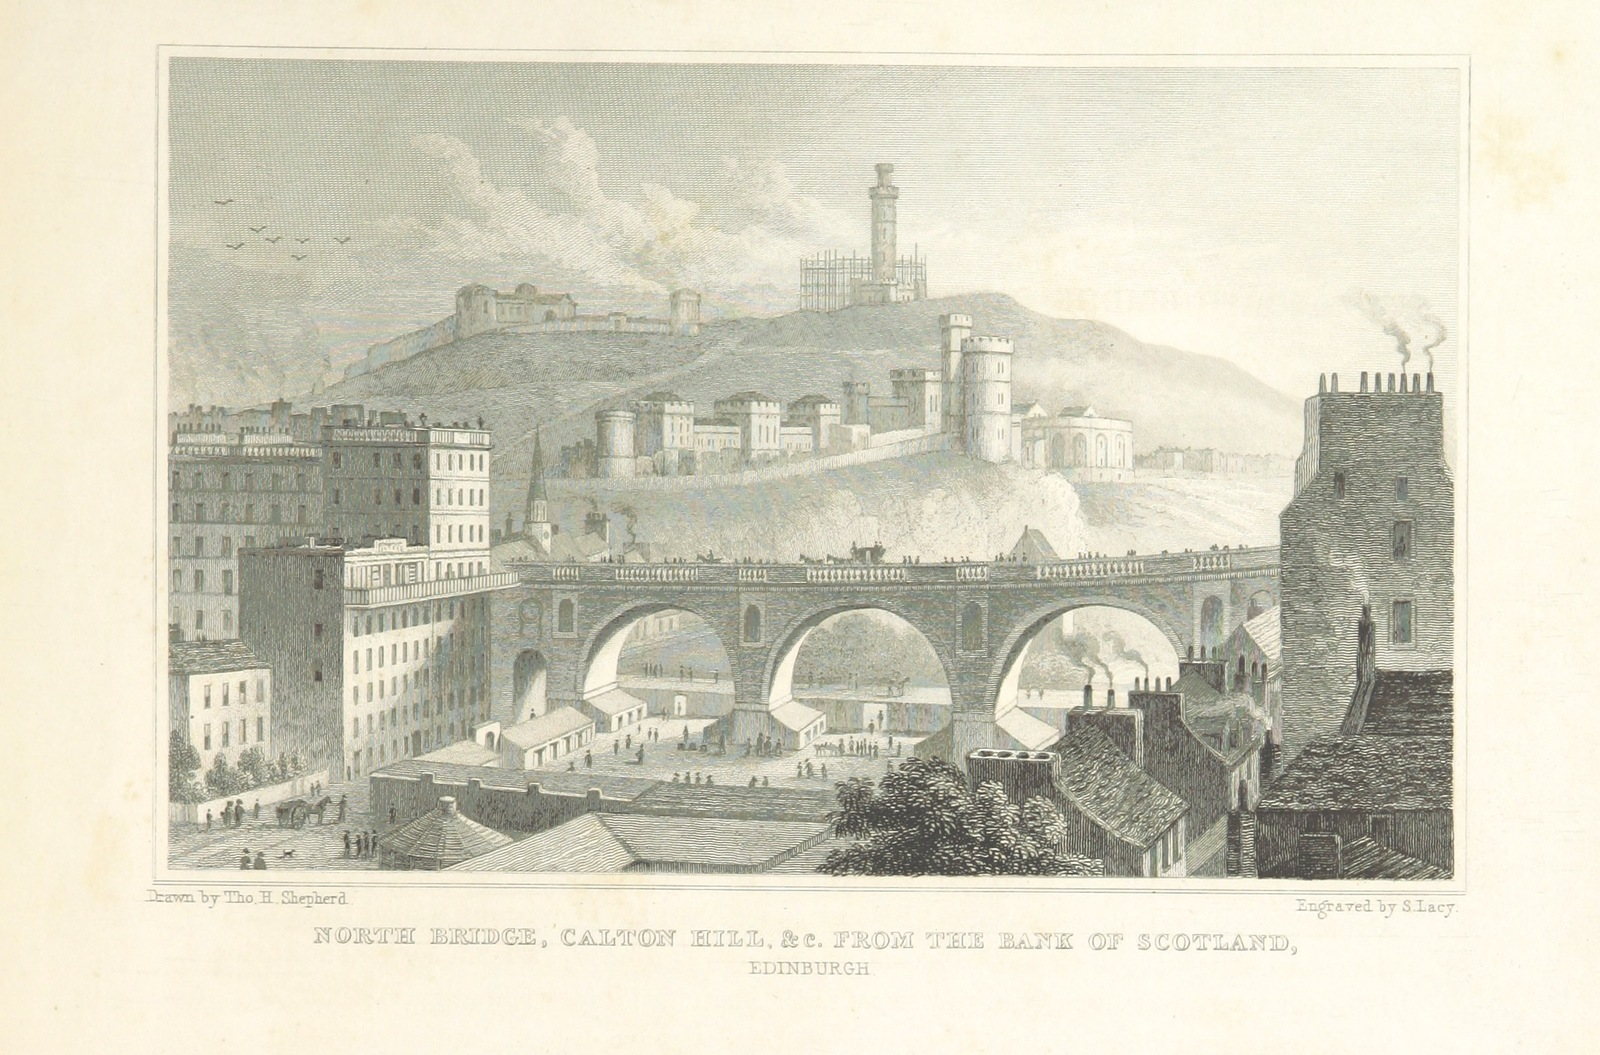 """North Bridge from """"Modern Athens, displayed in a series of views; or, Edinburgh in the nineteenth century; exhibiting the whole of the new buildings, modern improvements, antiquities, & picturesque scenery of the Scottish metropolis & its environs, from original drawings by Mr. T. H. Shepherd. With historical, topographical & critical illustrations [by John Britton]"""""""